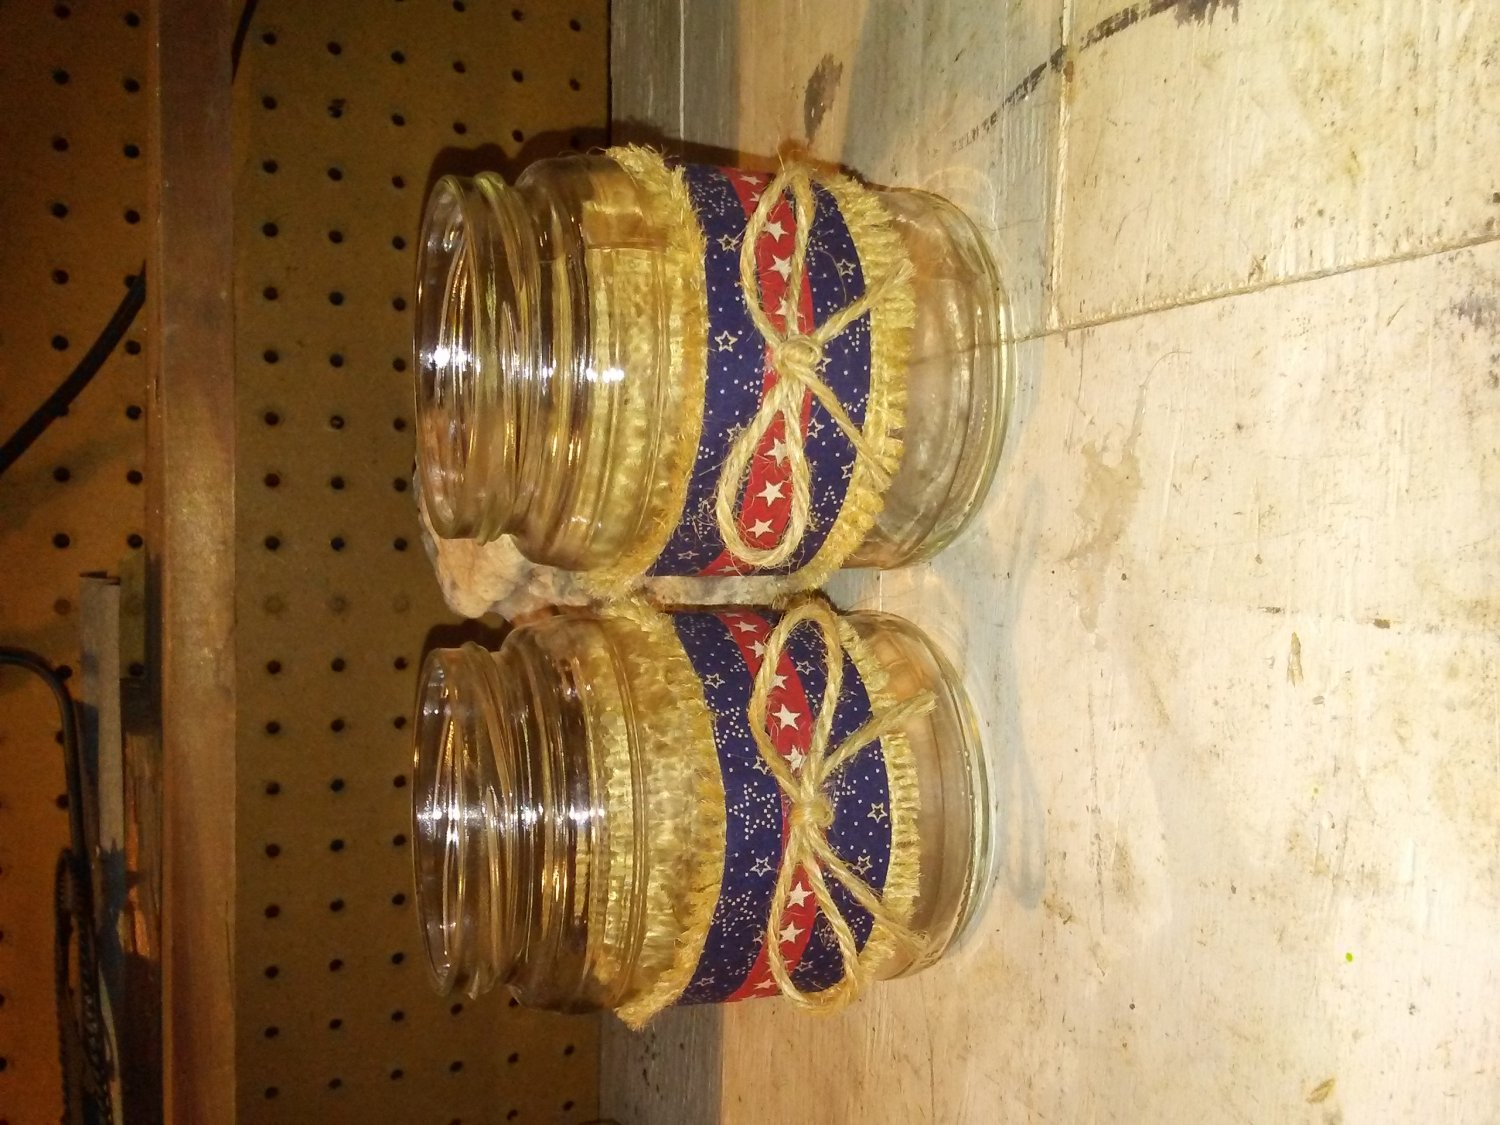 Mason jars with burlap